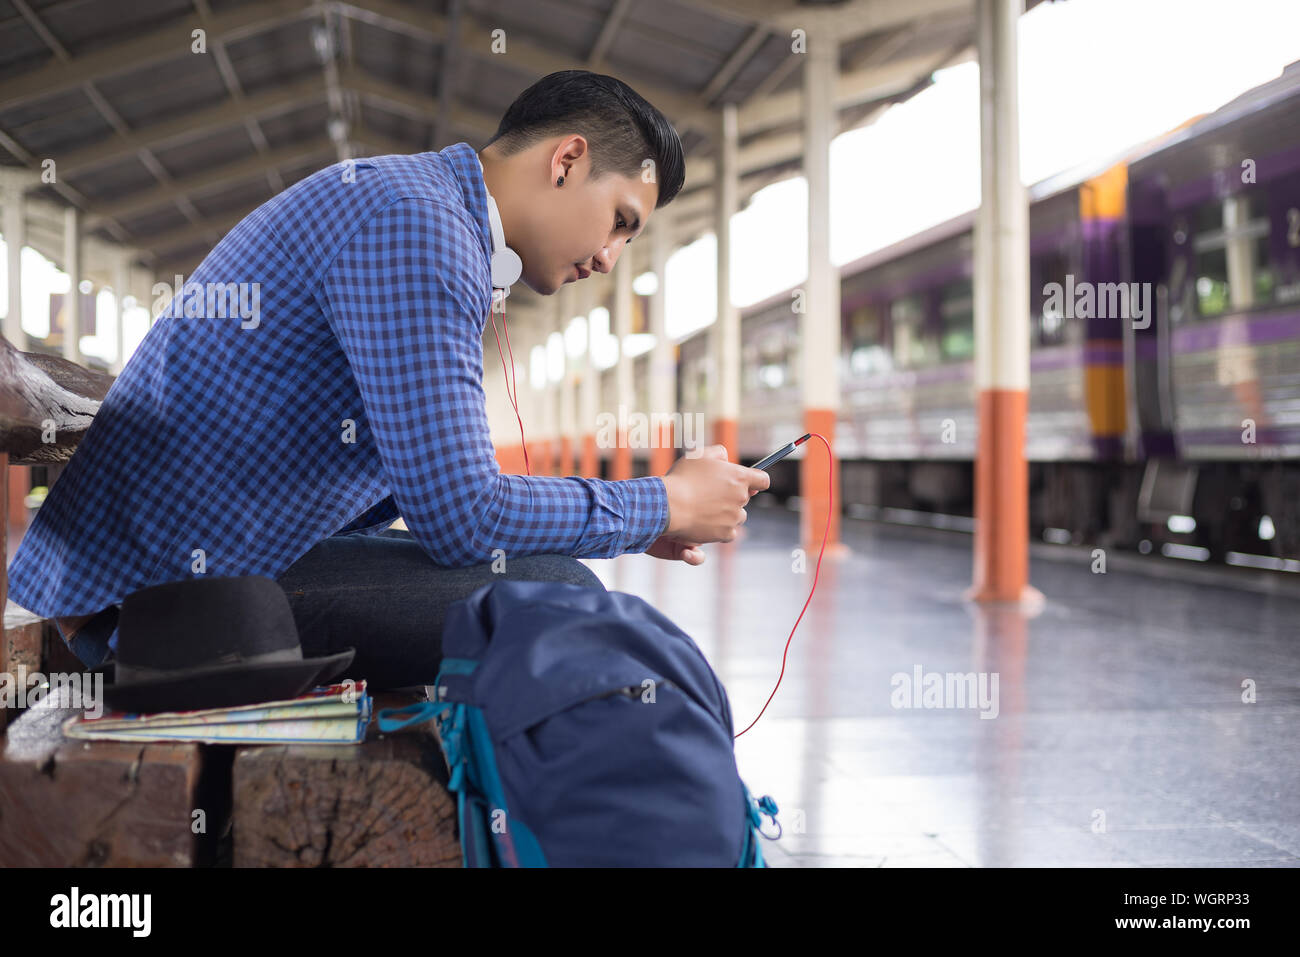 Side View Of Man Using Mobile Phone While Sitting At Railroad Station Platform Stock Photo